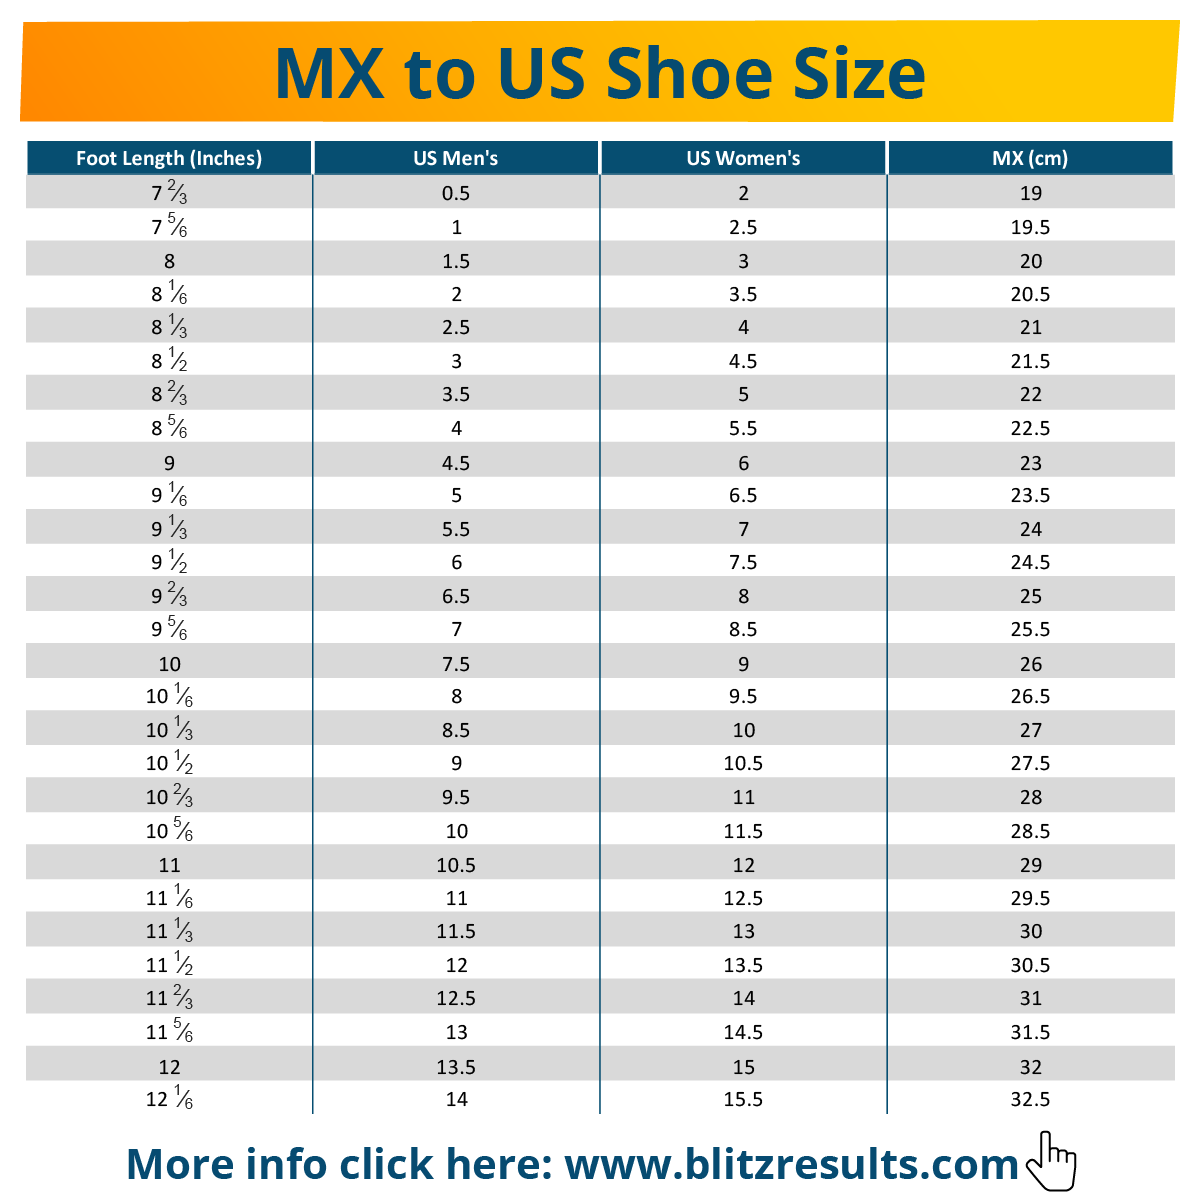 MX to US Shoe Size